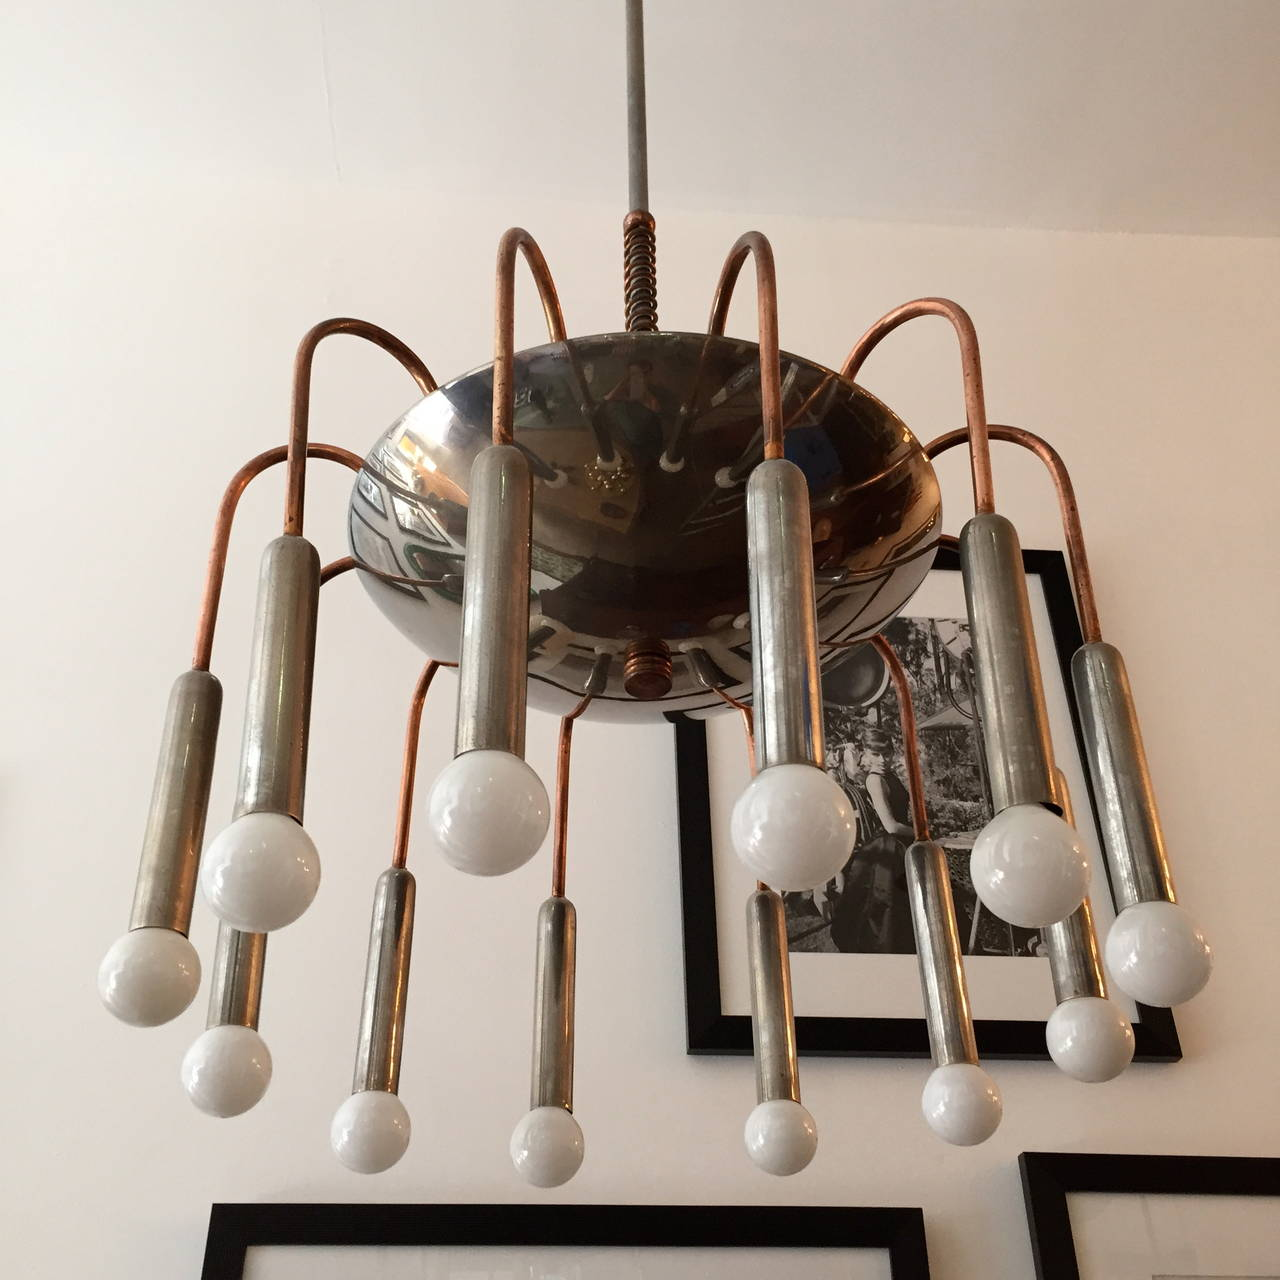 Italian Futurist Chandelier 1920s Art Deco In Excellent Condition For Sale In New York, NY